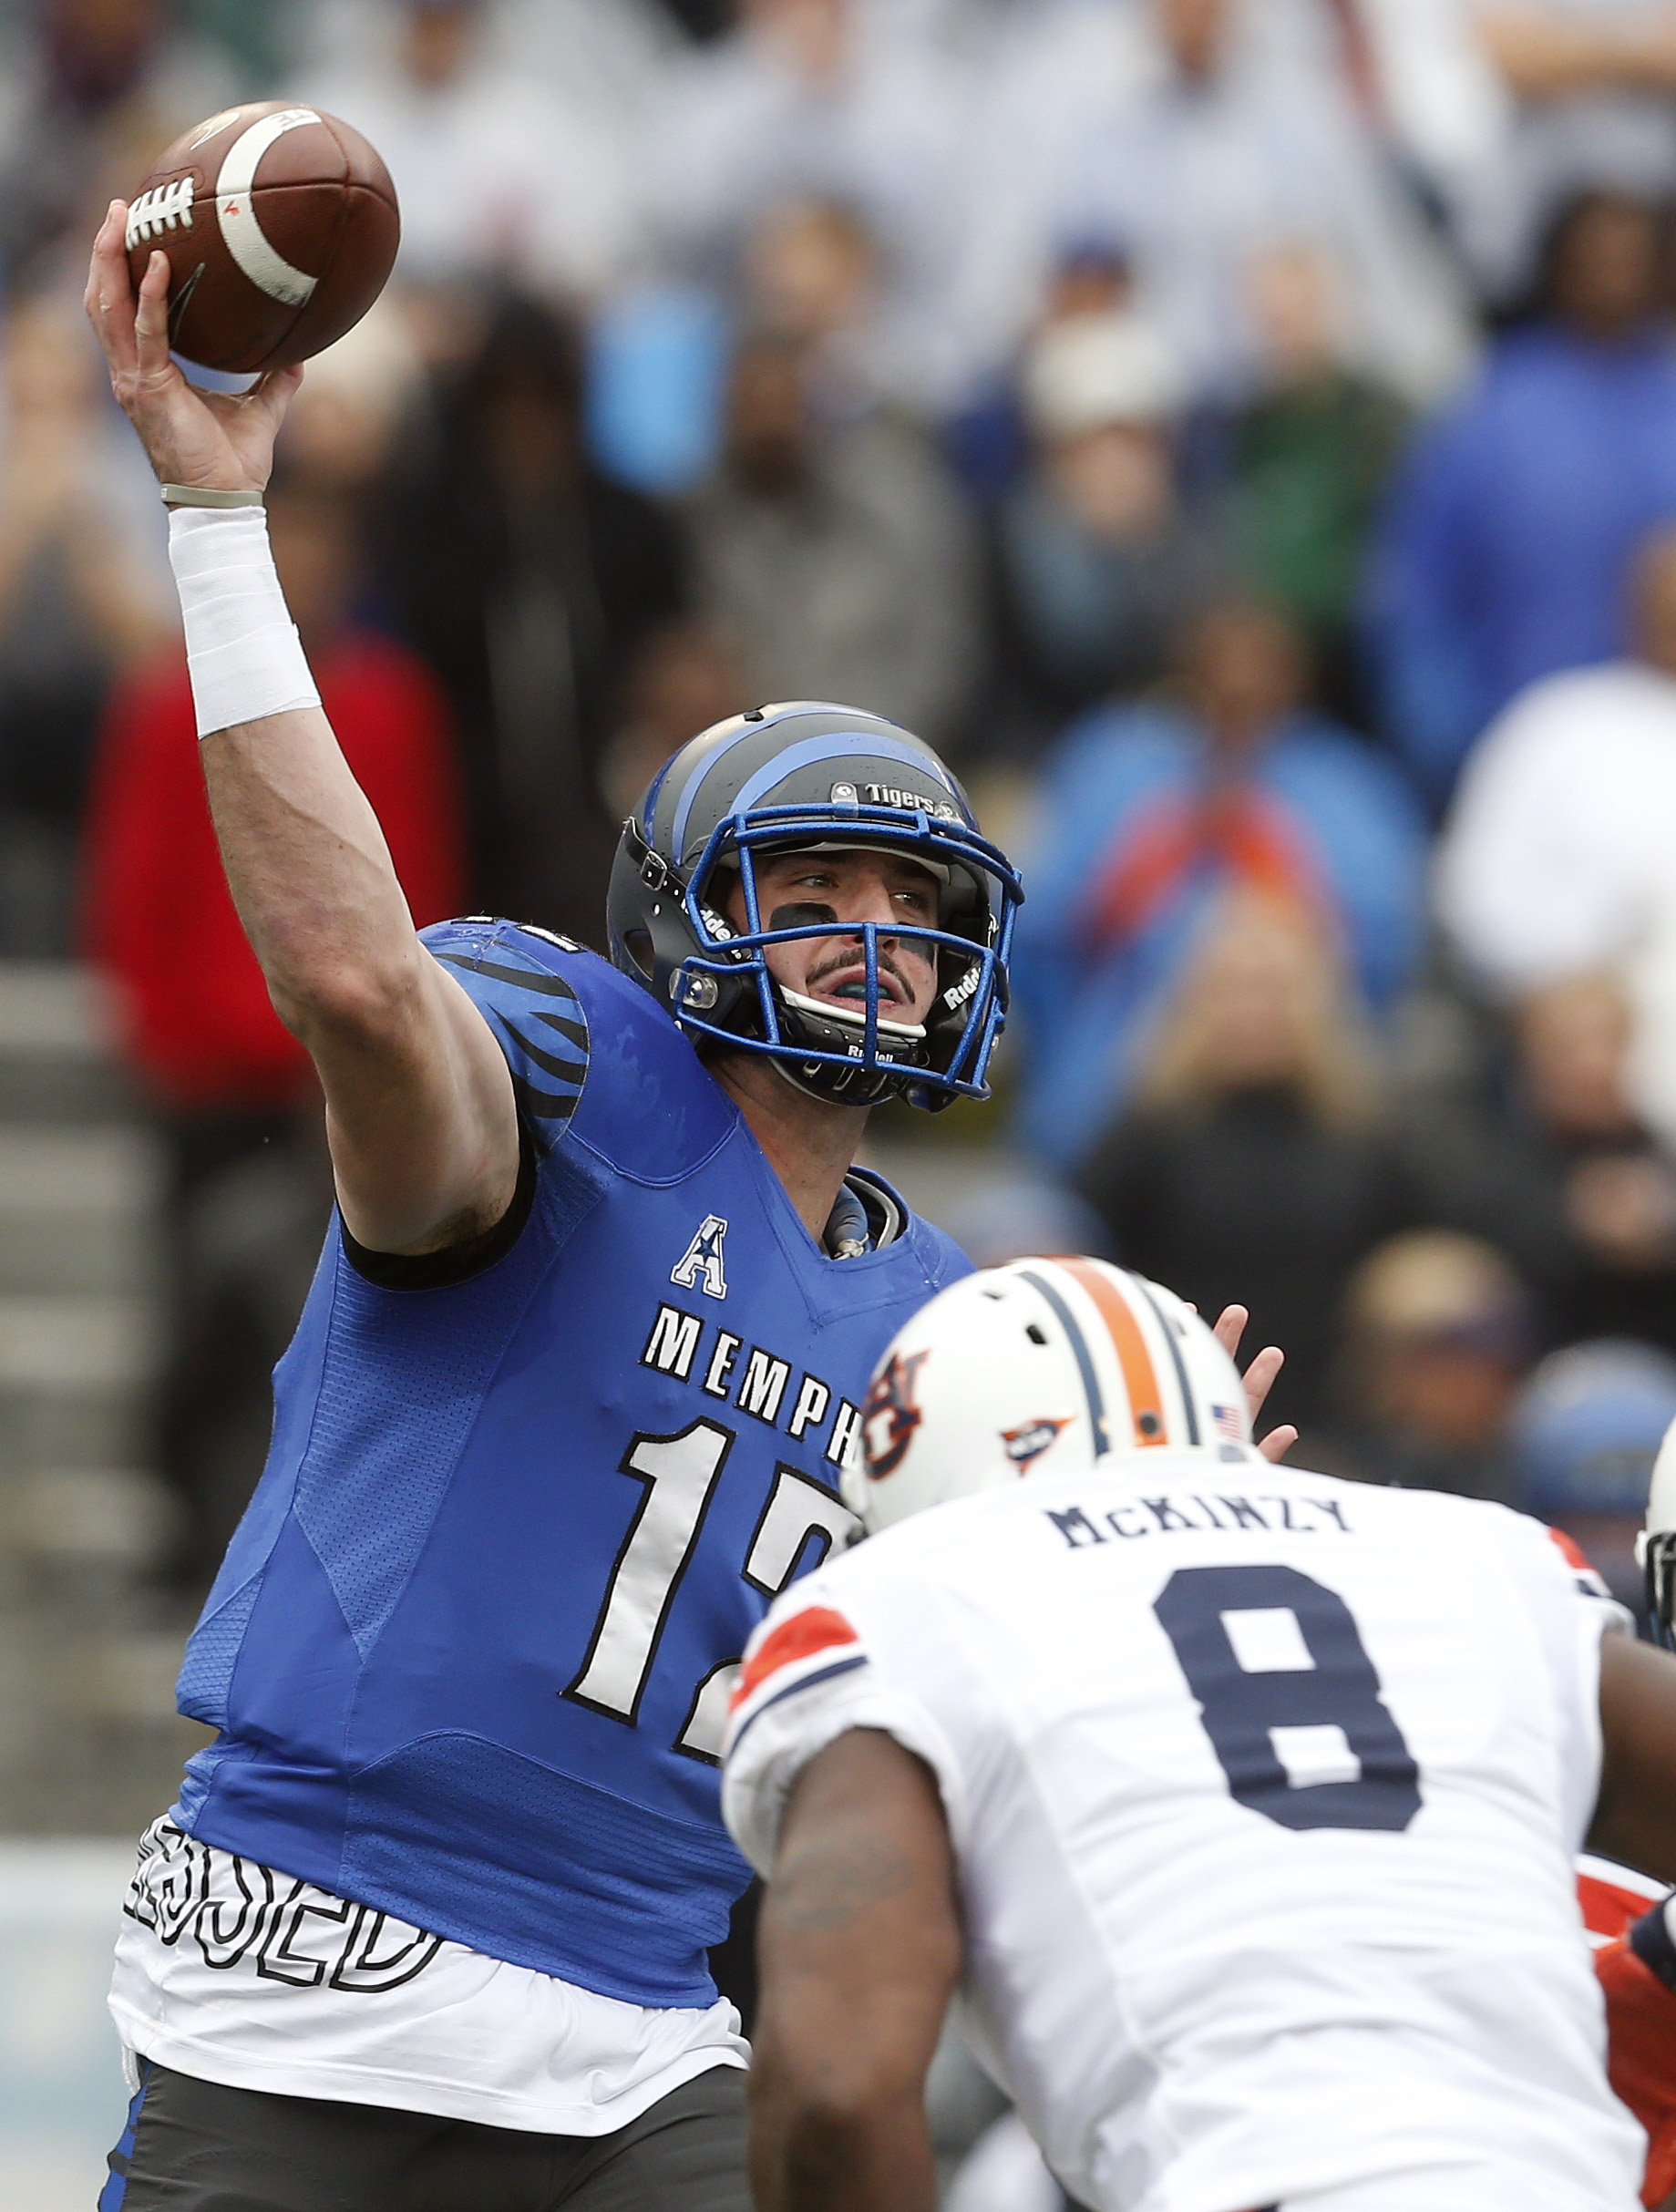 Memphis quarterback Paxton Lynch (12) throws a pass as Auburn linebacker Cassanova McKinzy (8) pressures him during the first half of the Birmingham Bowl NCAA college football game, Wednesday, Dec. 30, 2015, in Birmingham, Ala. (AP Photo/Butch Dill)